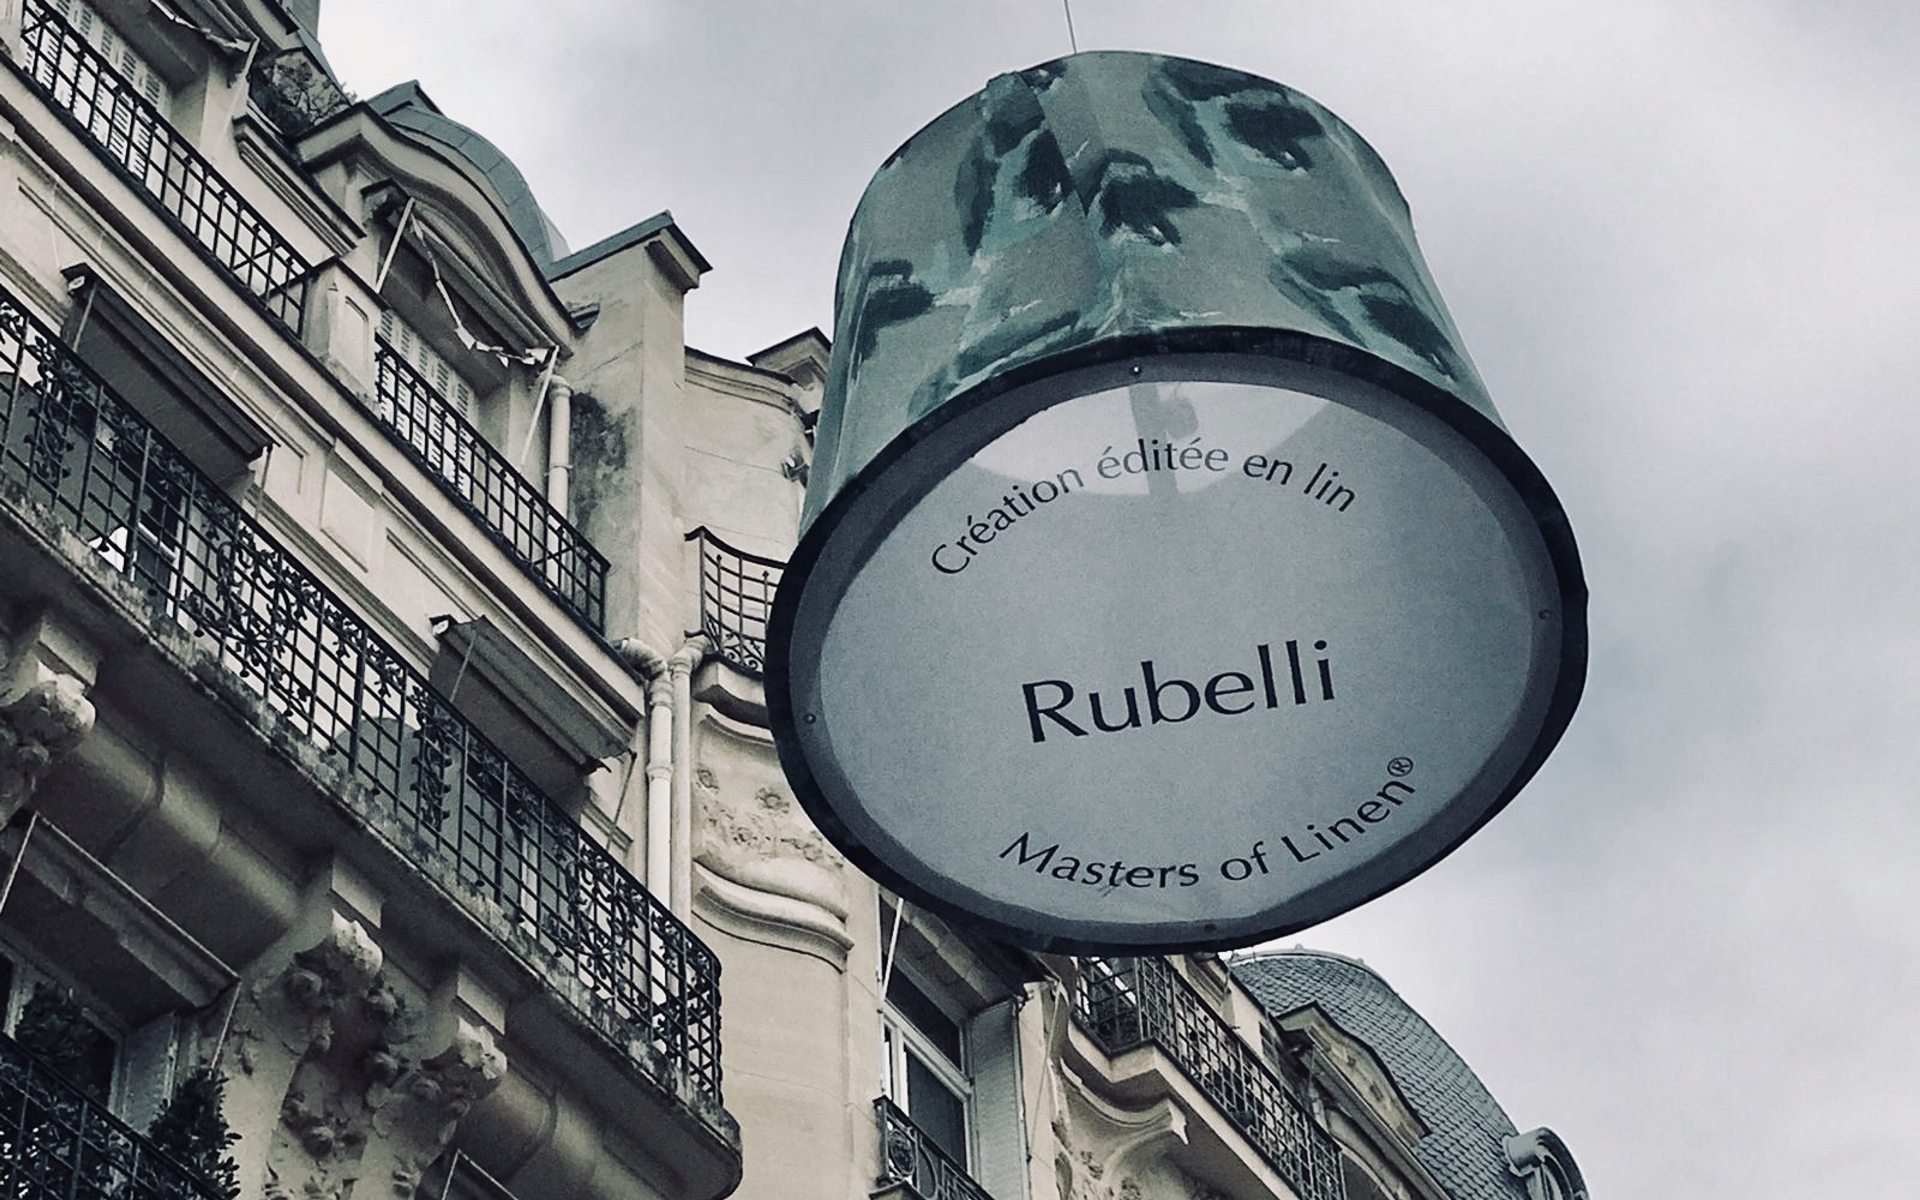 Rubelli at Paris Deco Off 2019 with Hangar Design Group